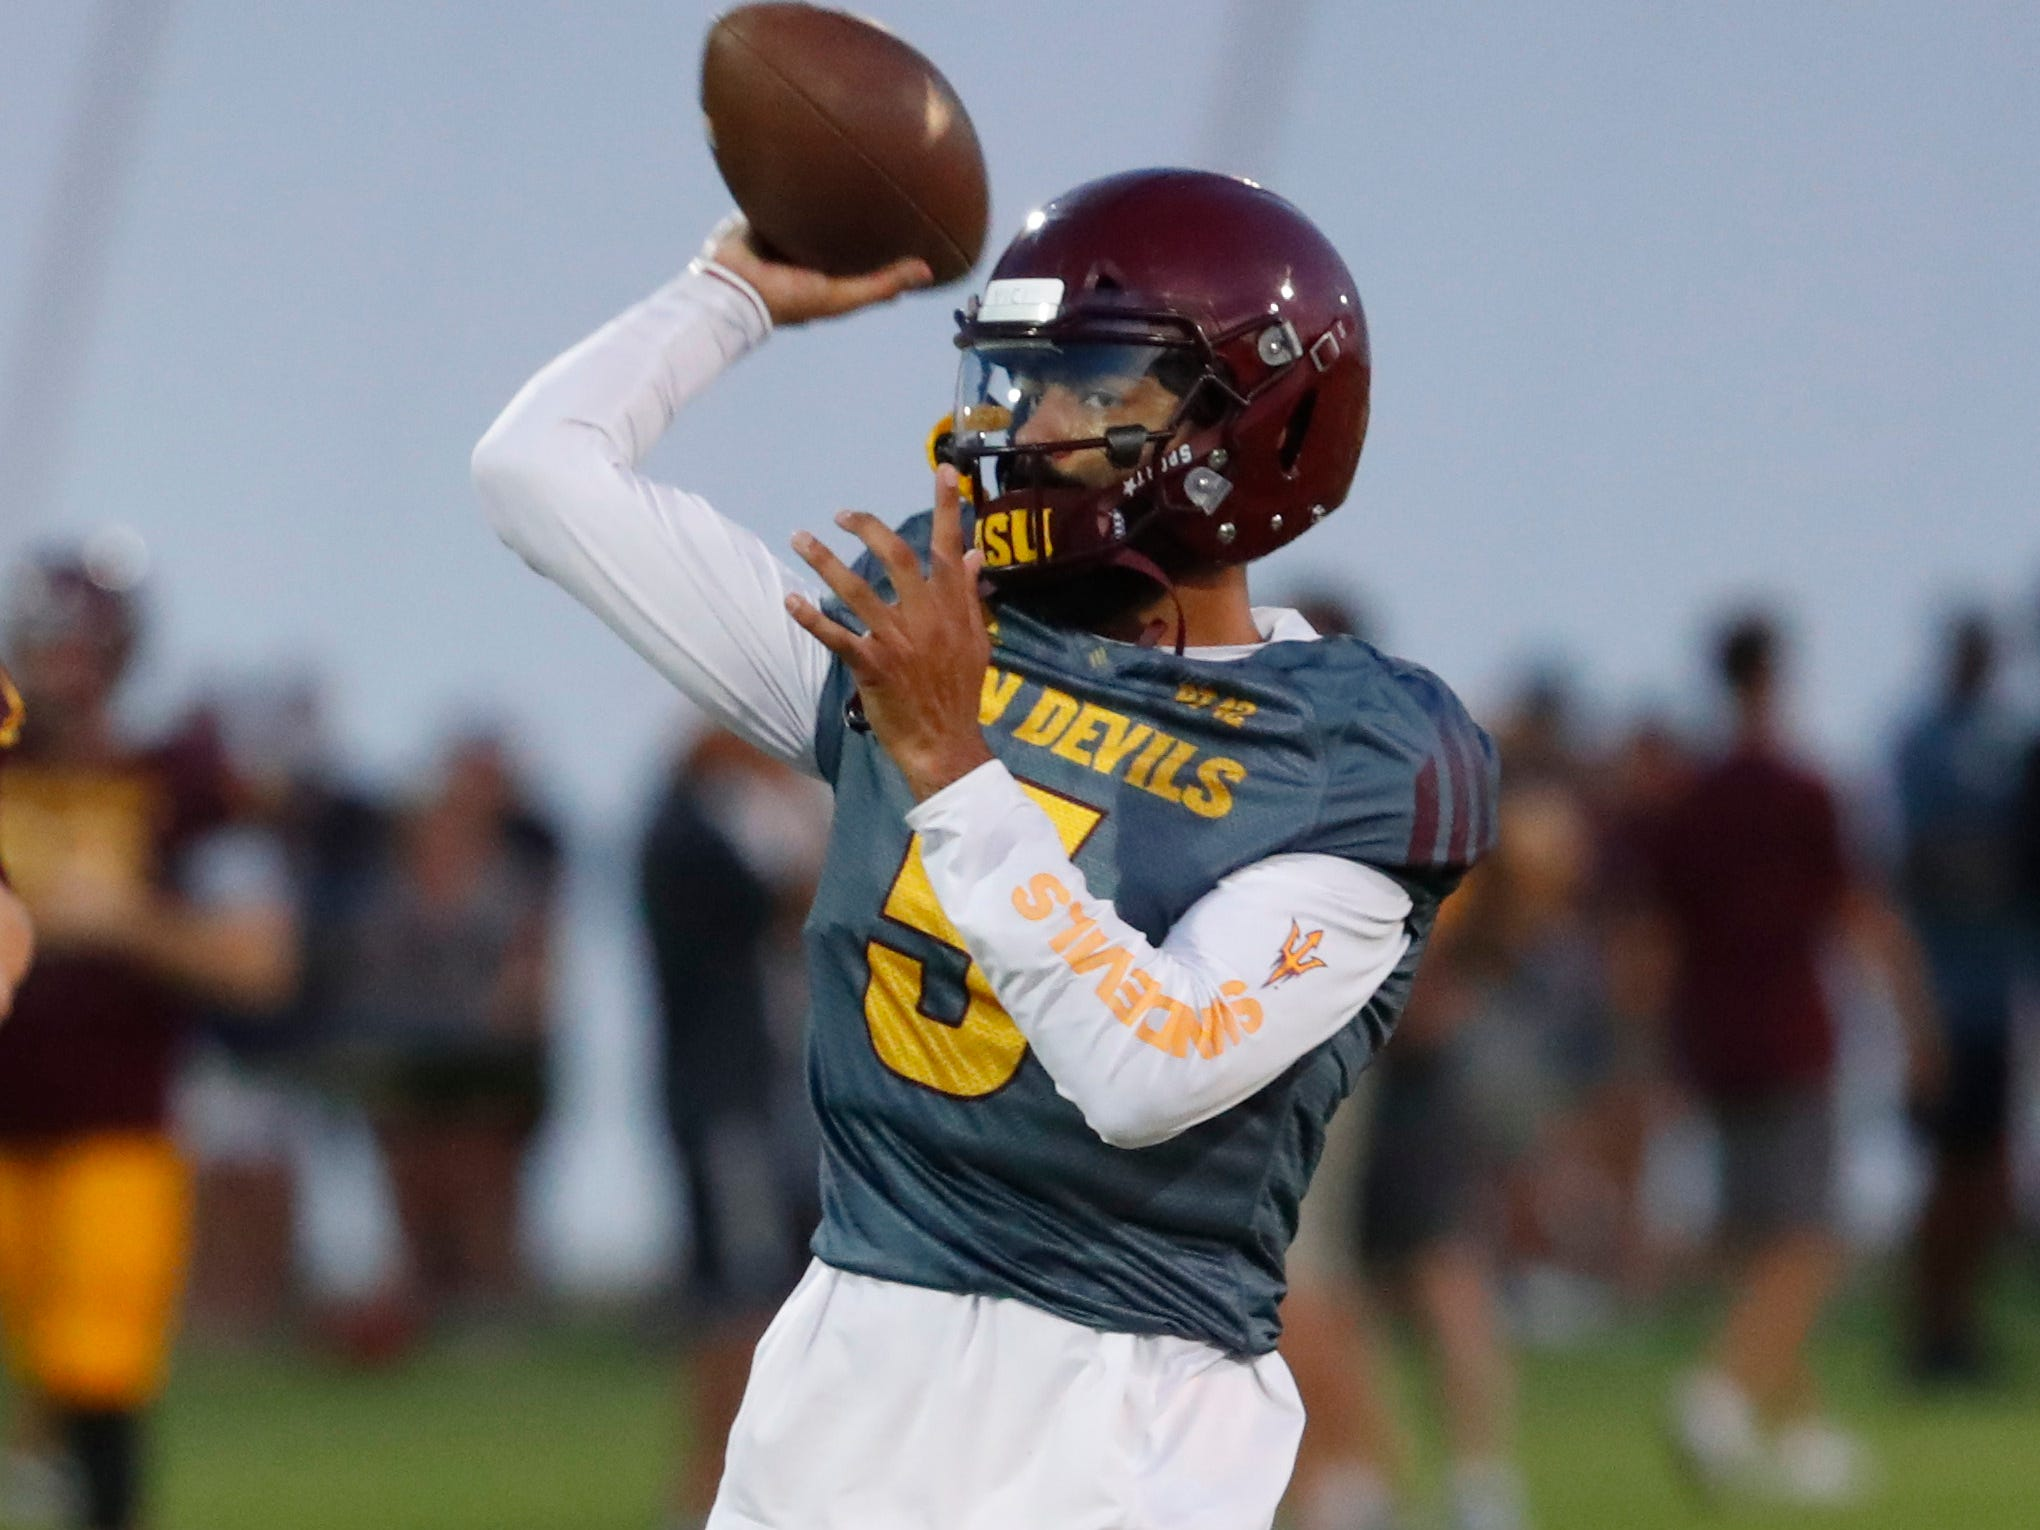 ASU's Manny Wilkins (5) throws passes during the ASU scrimmage at Kajikawa Practice Fields in Tempe, Ariz. on Aug. 11, 2018.